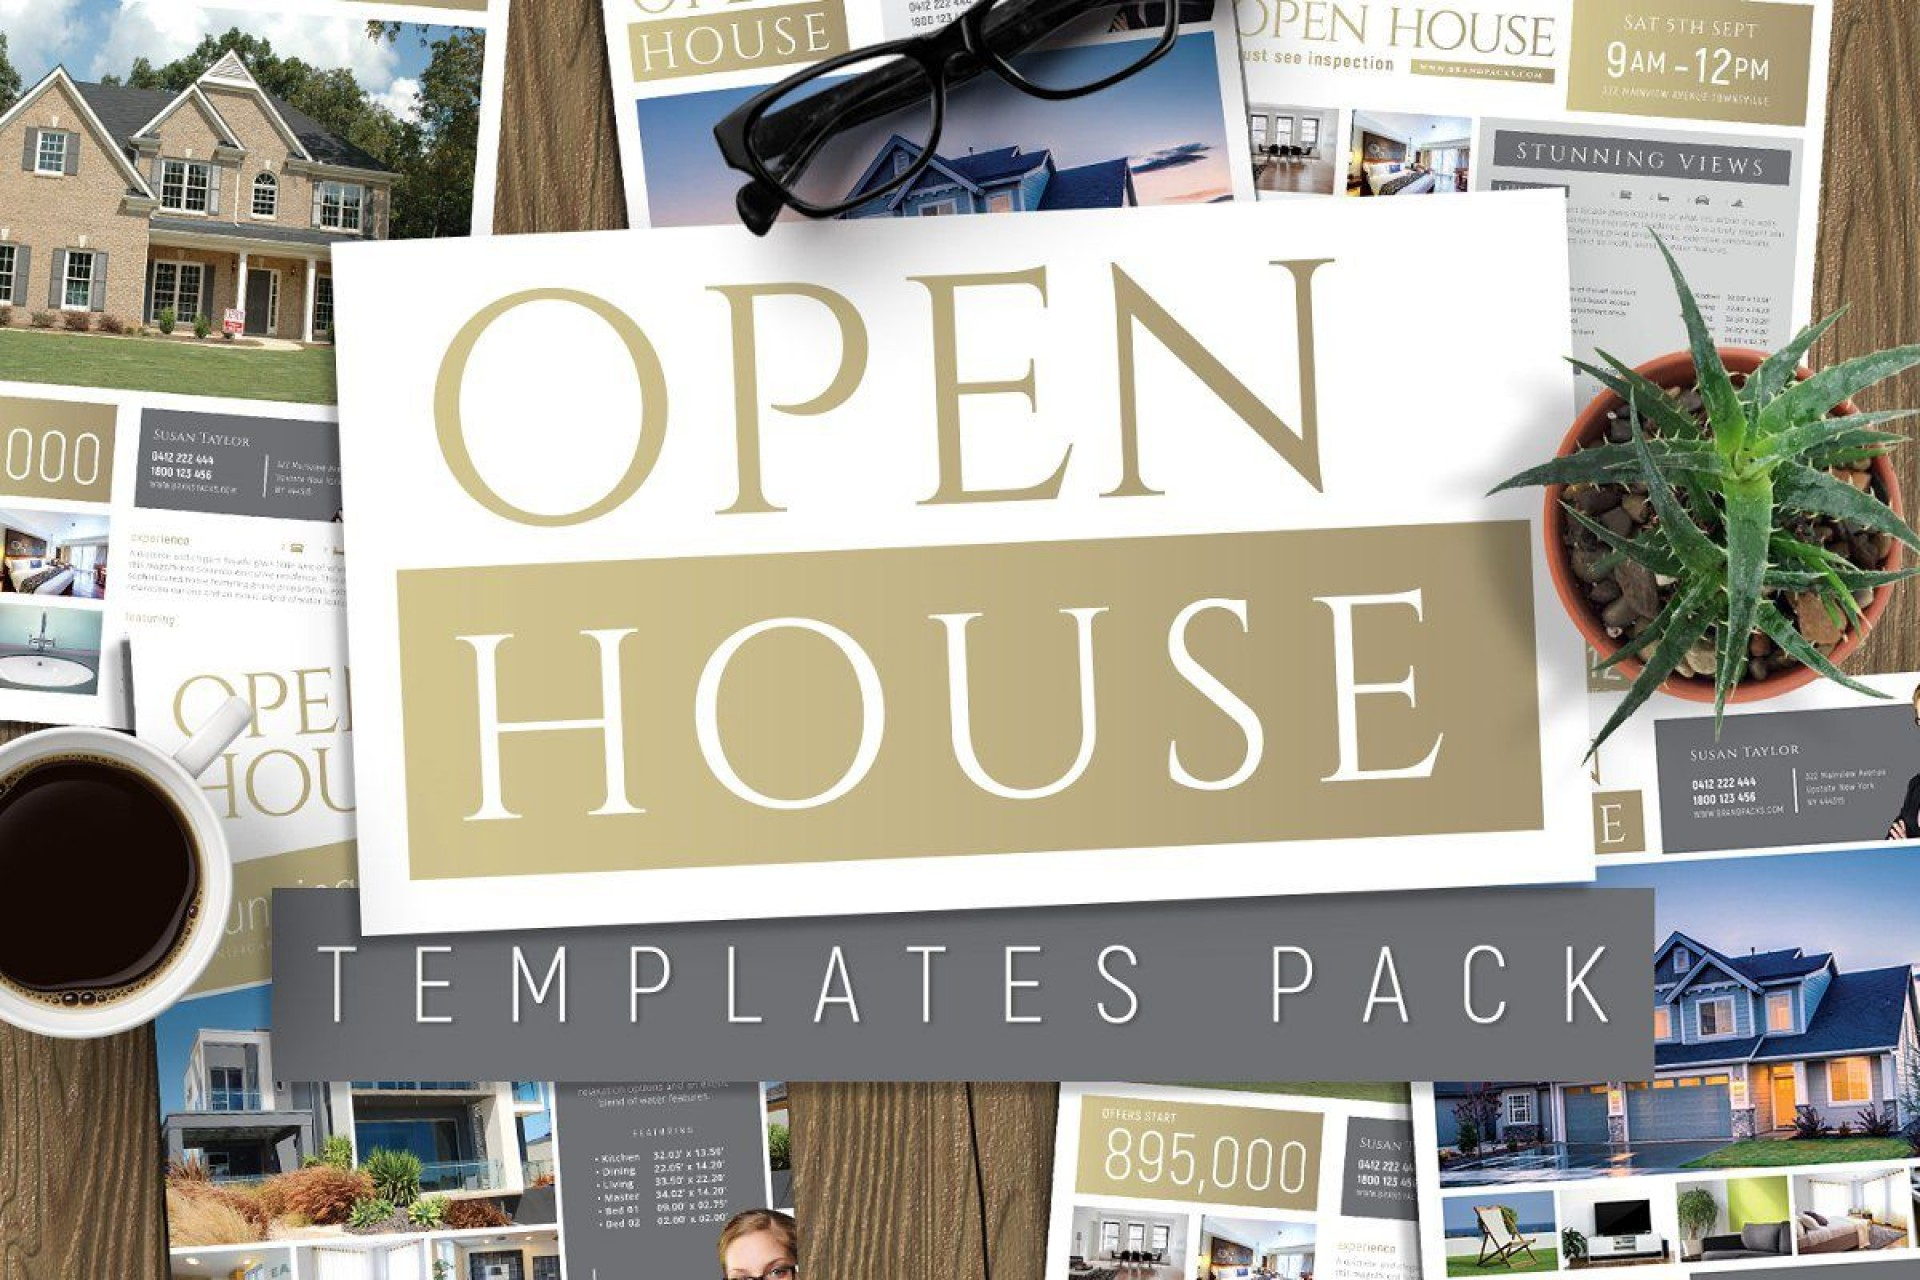 006 Unbelievable Open House Flyer Template Picture  Templates Free School Microsoft1920